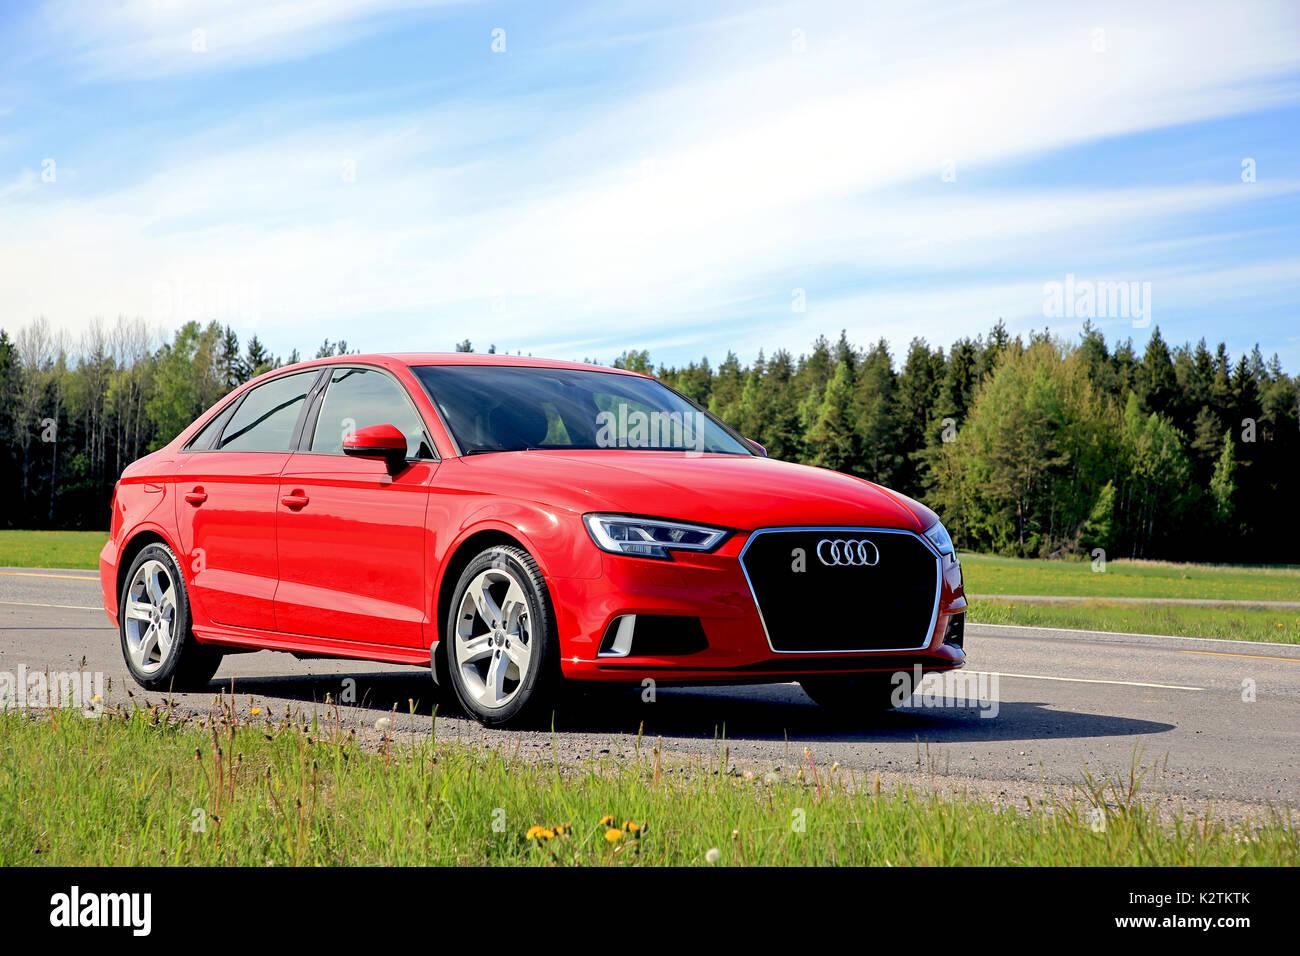 KAARINA, FINLAND - JUNE 3, 2017: New beautiful Tango red Audi A3 Sedan Business Sport 2017 parked on side of highway on a clear day of early summer. - Stock Image